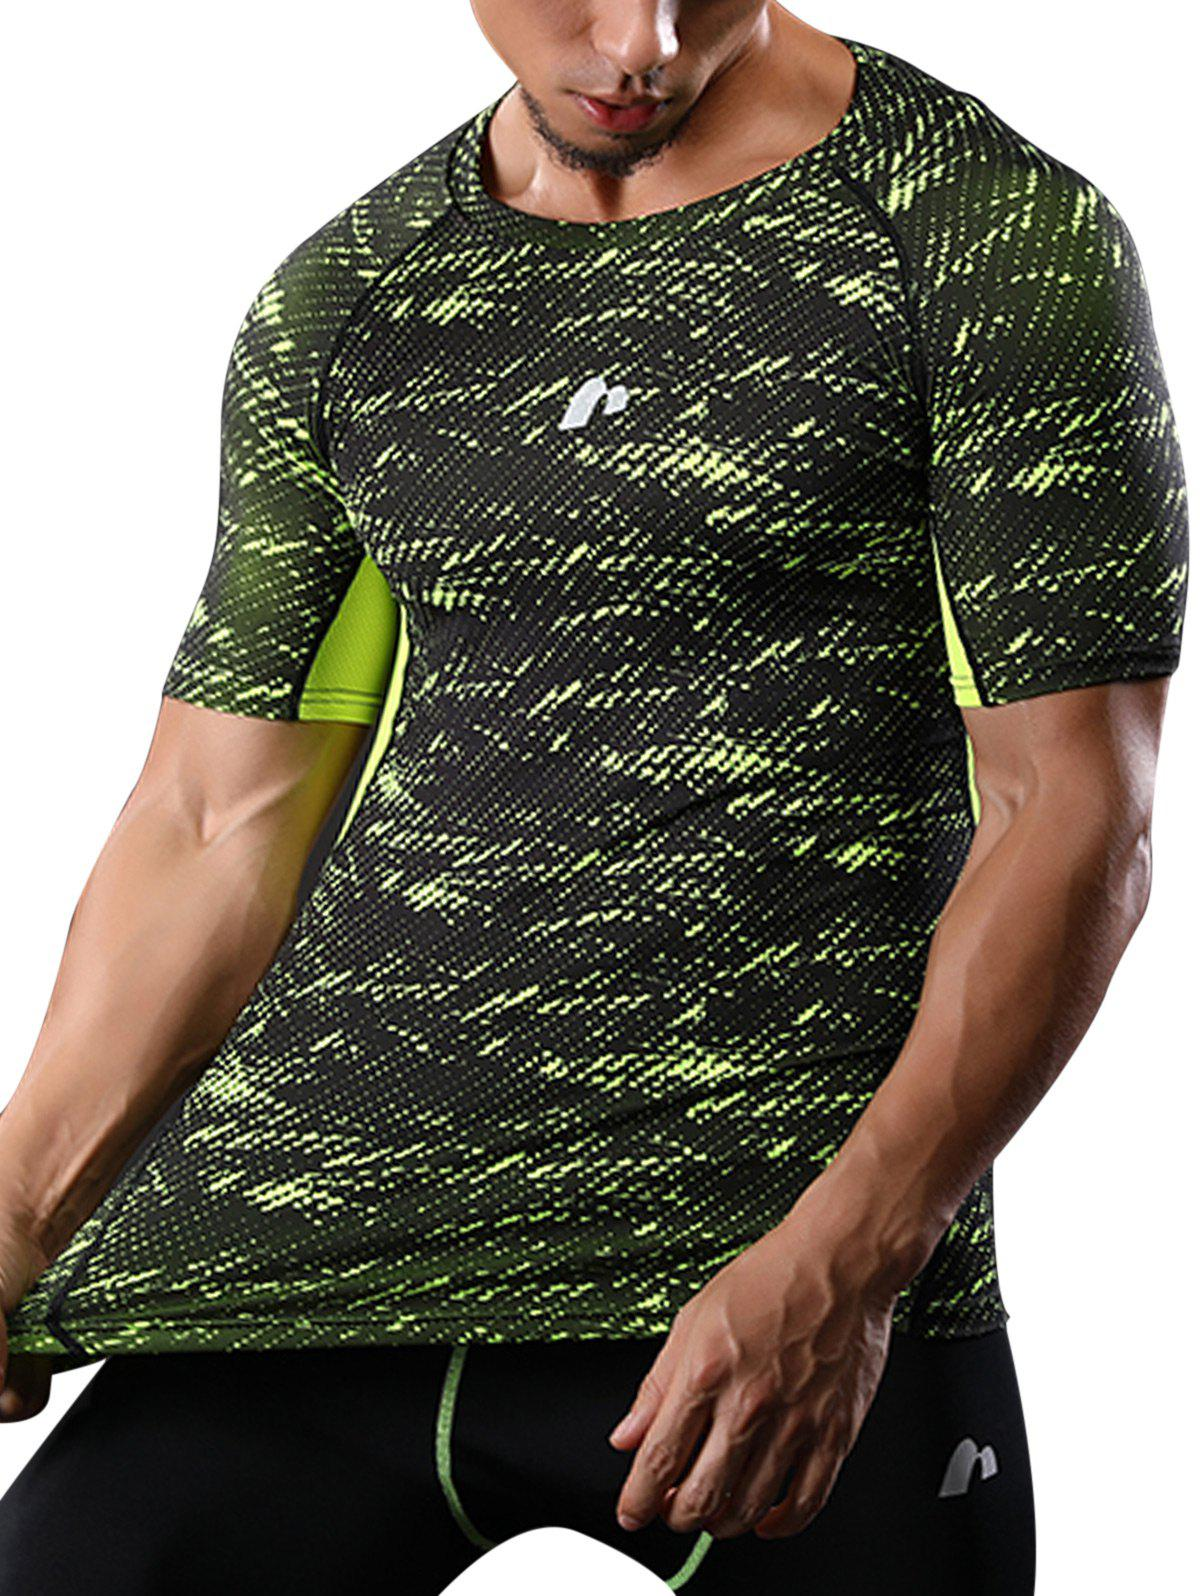 Raglan Sleeve Quick Dry Camouflage Stretchy Gym T-shirt - GREEN XL